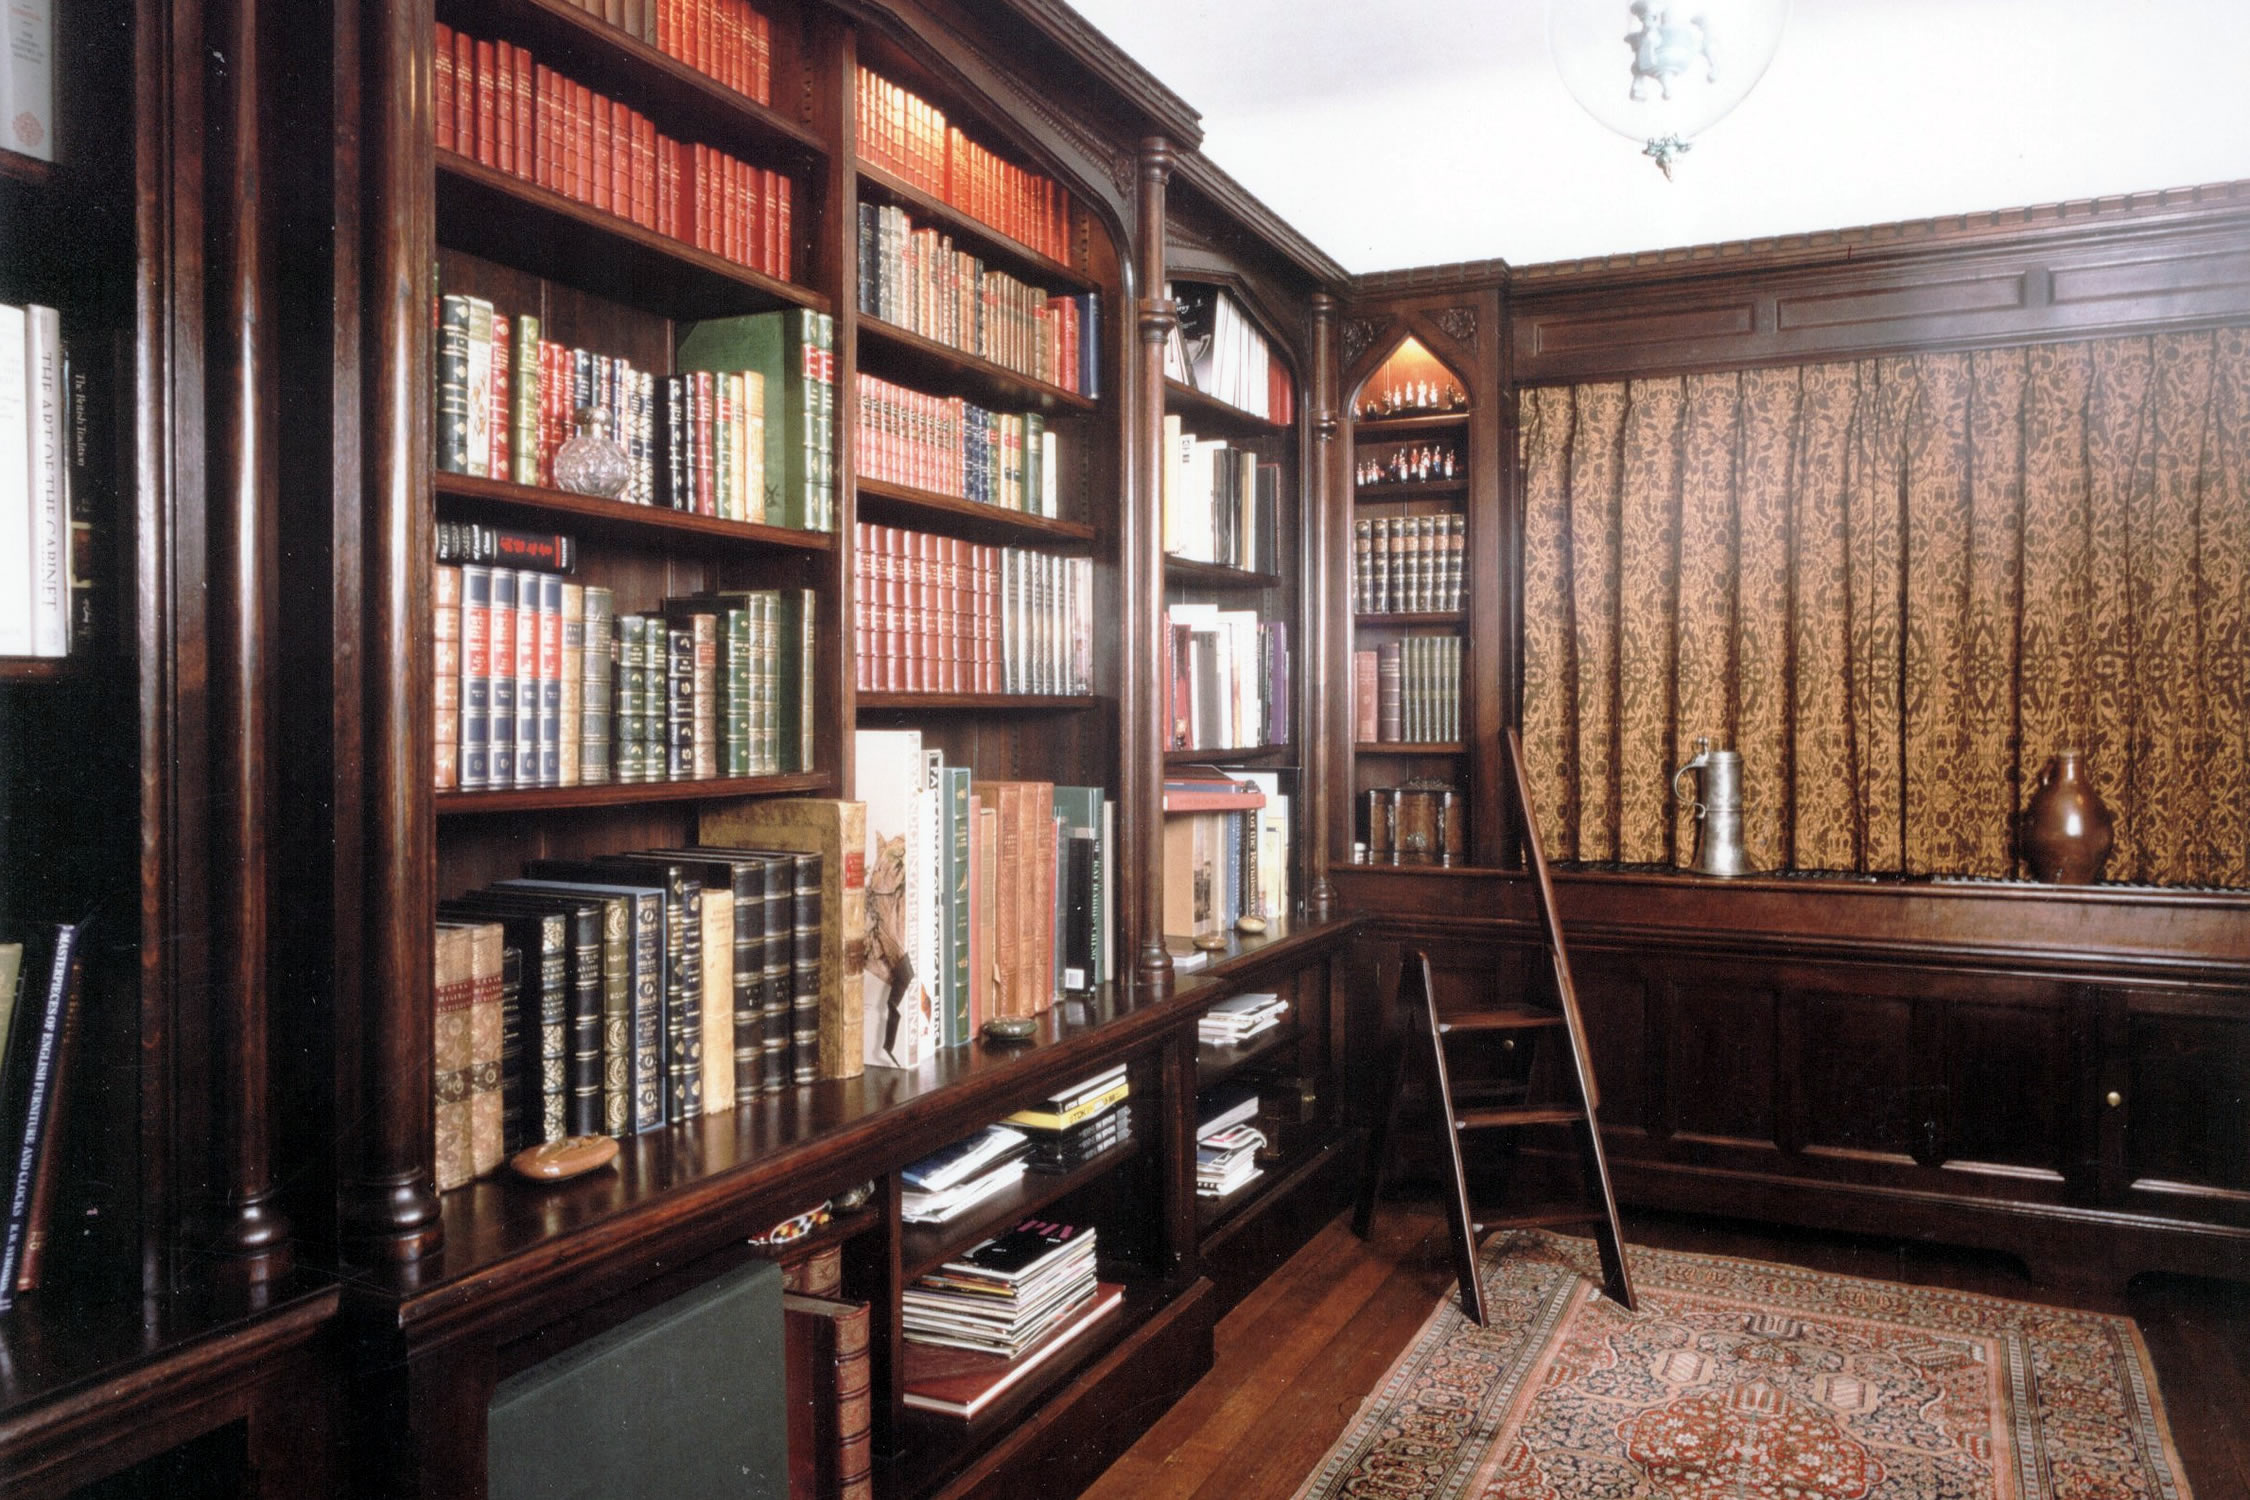 16th century style oak library